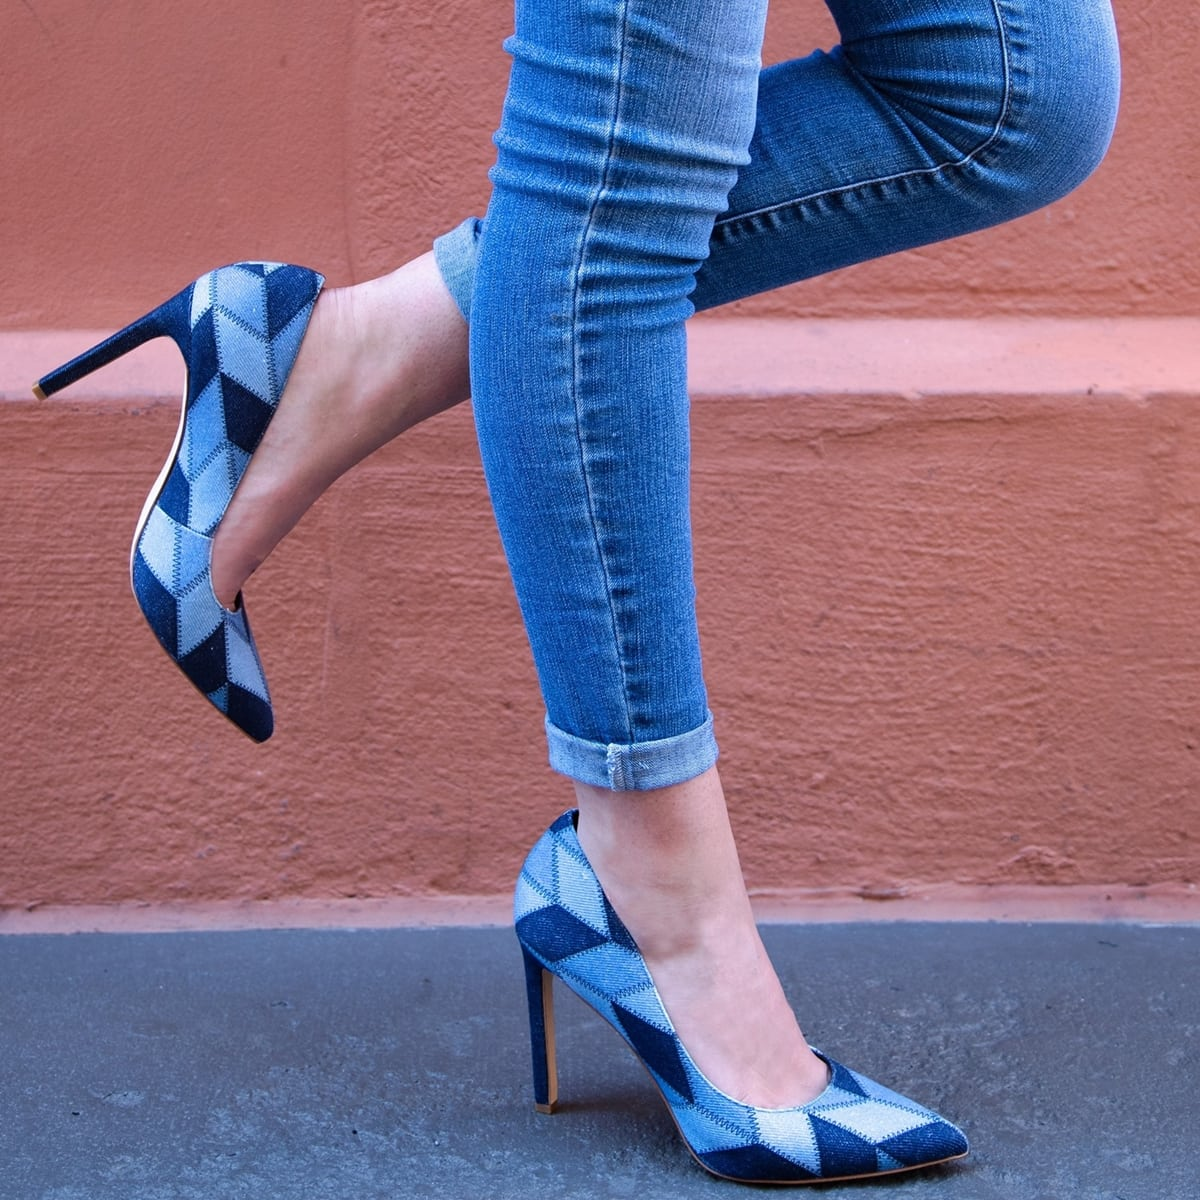 """Trend-savvy denim patchwork pointy-toe pump lifted by a sky-high, leg-lengthening 4"""" stiletto heel"""